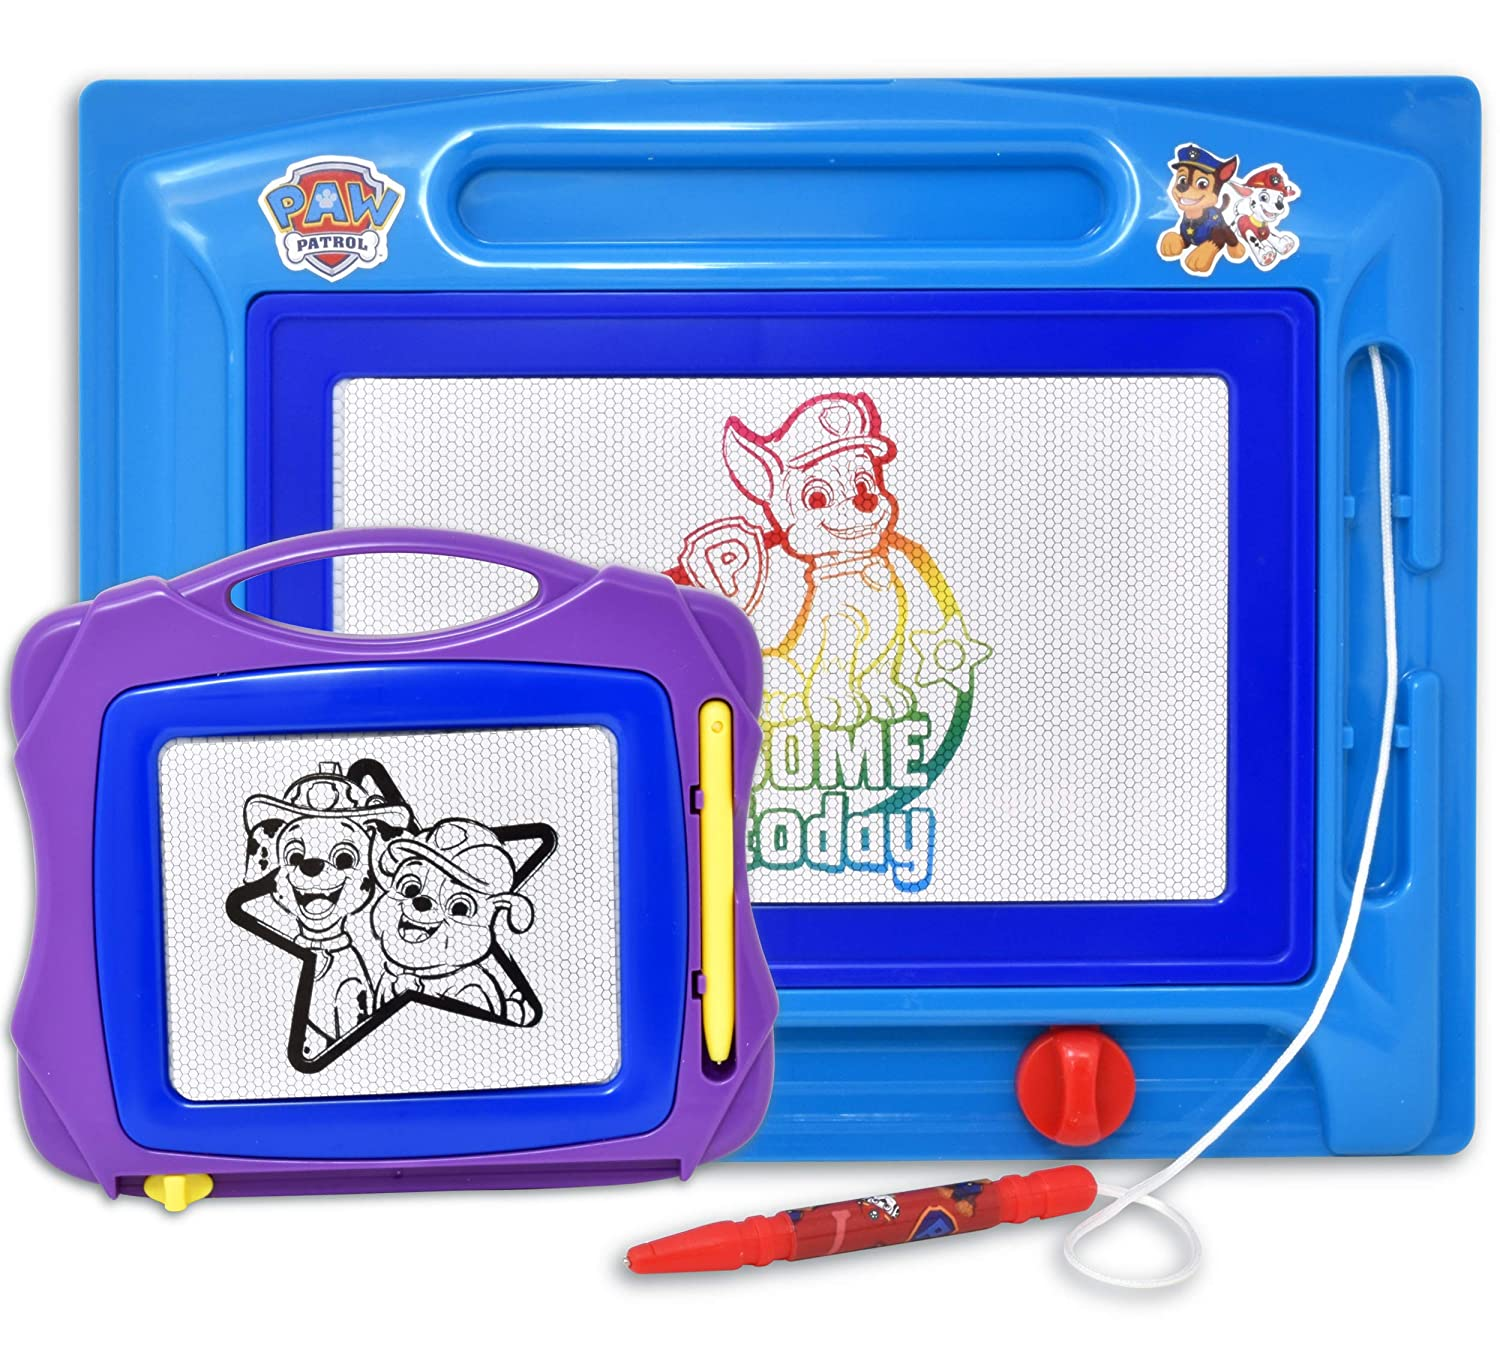 Draw and Erase for Kids Paw Patrol Magnetic Drawing Board Boys /& Girls Toddlers Large Erasable Magna Doodle Sketching Pad with Travel Size Sketcher to Color